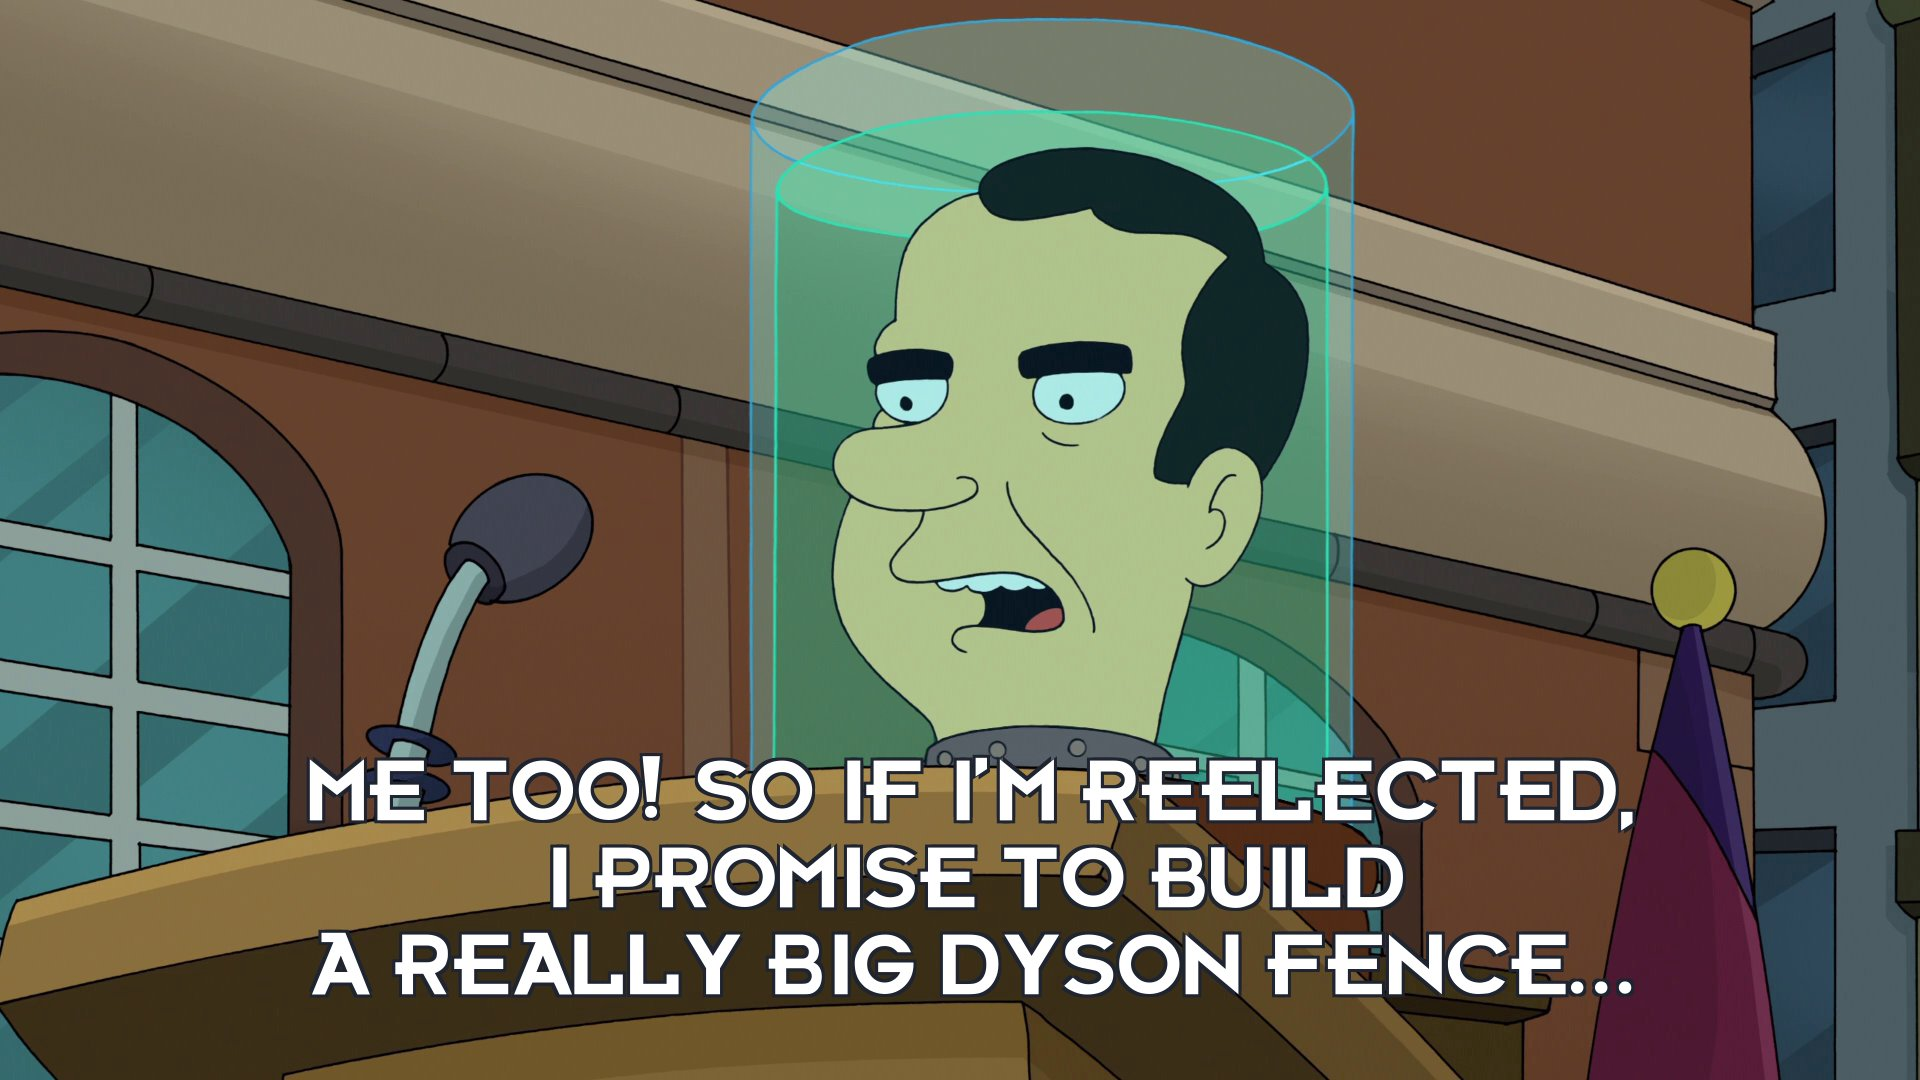 Richard Nixon's head: Me too! So if I'm reelected, I promise to build a really big Dyson fence...